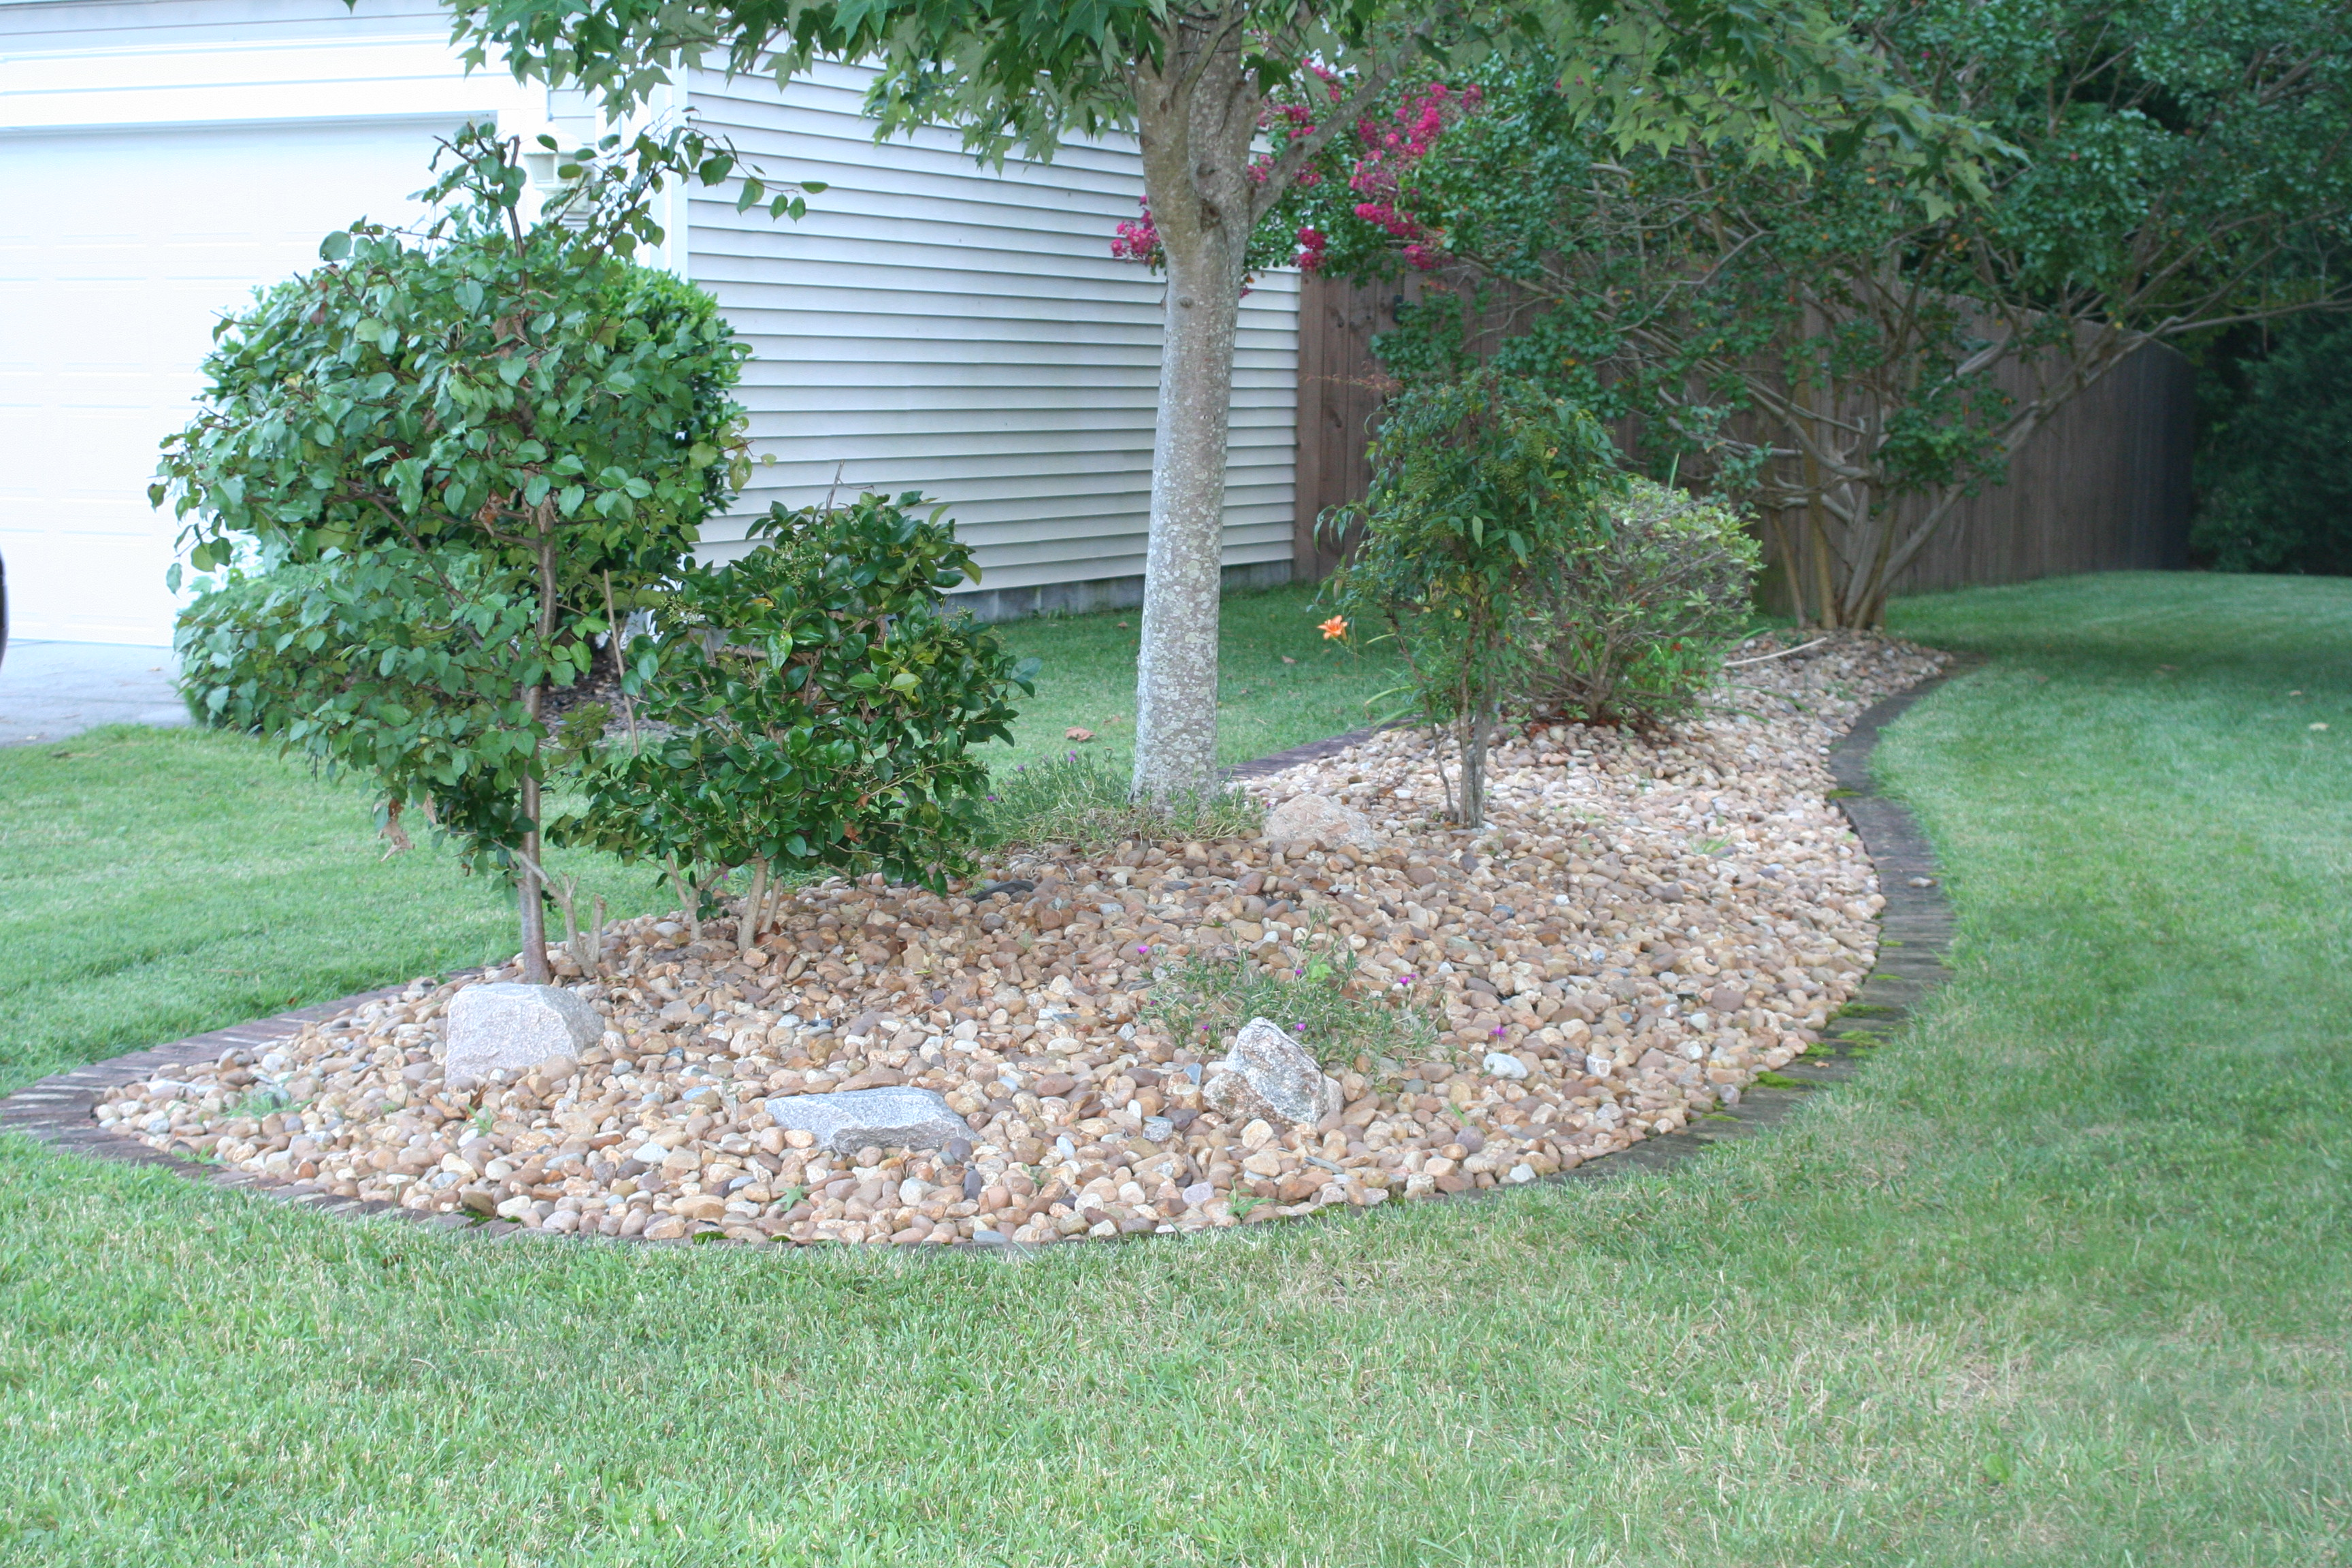 Chesapeake river rock daw and son general contracting for Landscaping rocks virginia beach